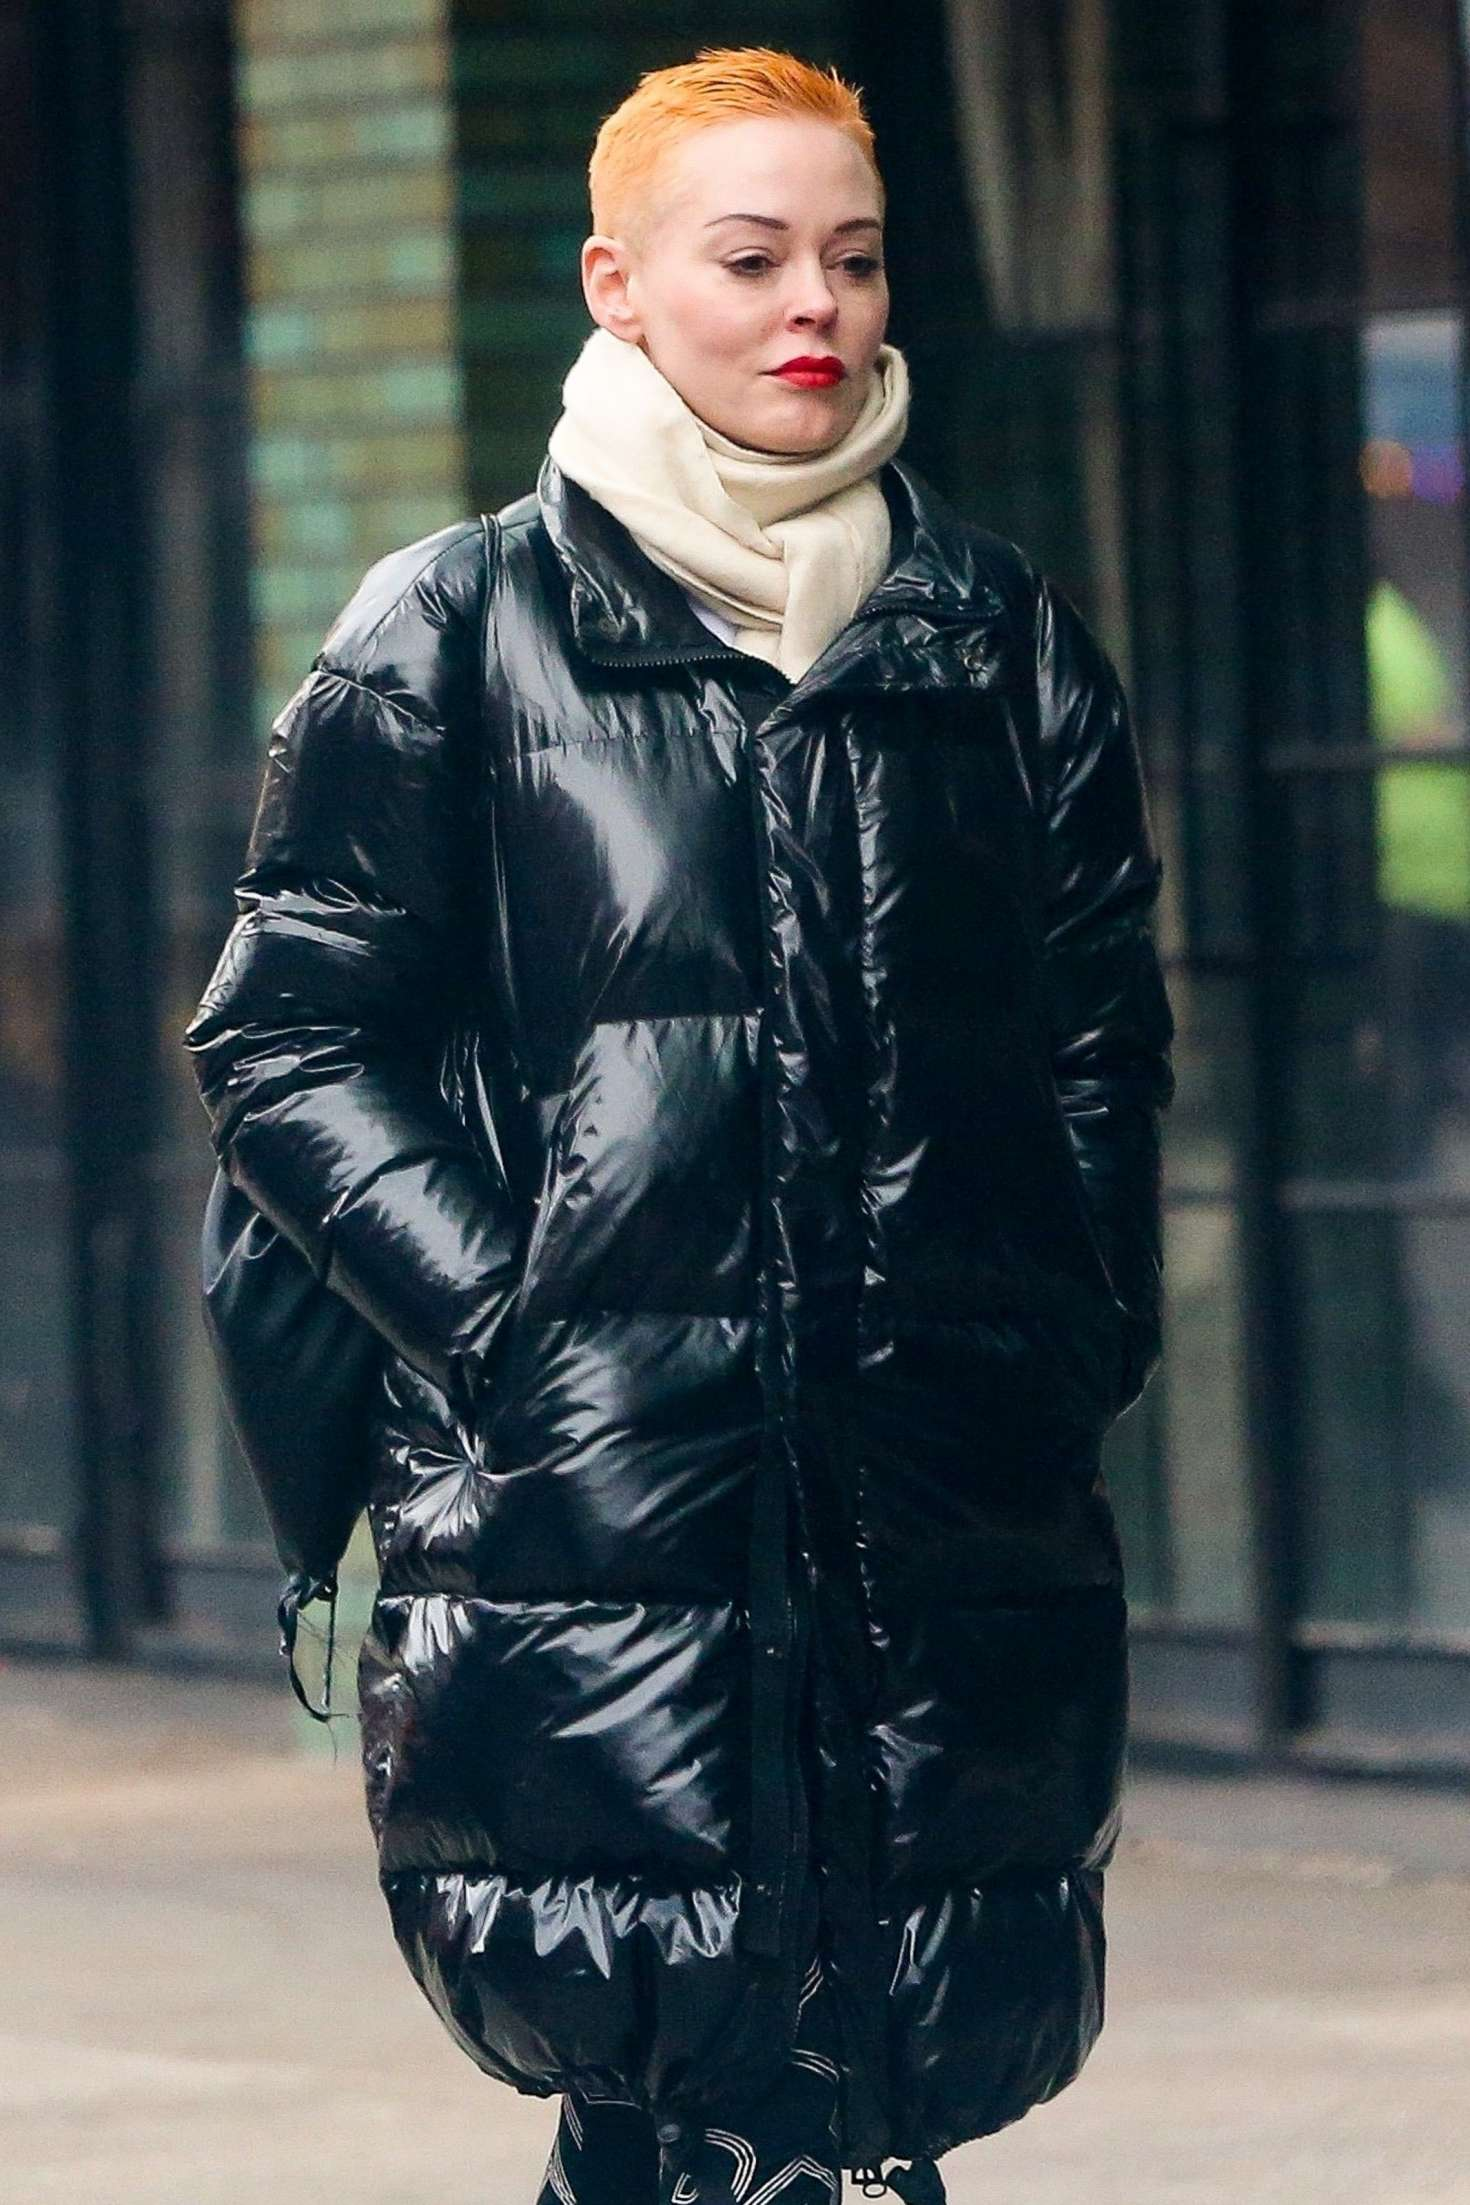 Rose McGowan - Arriving at The Bowery Hotel in NYC